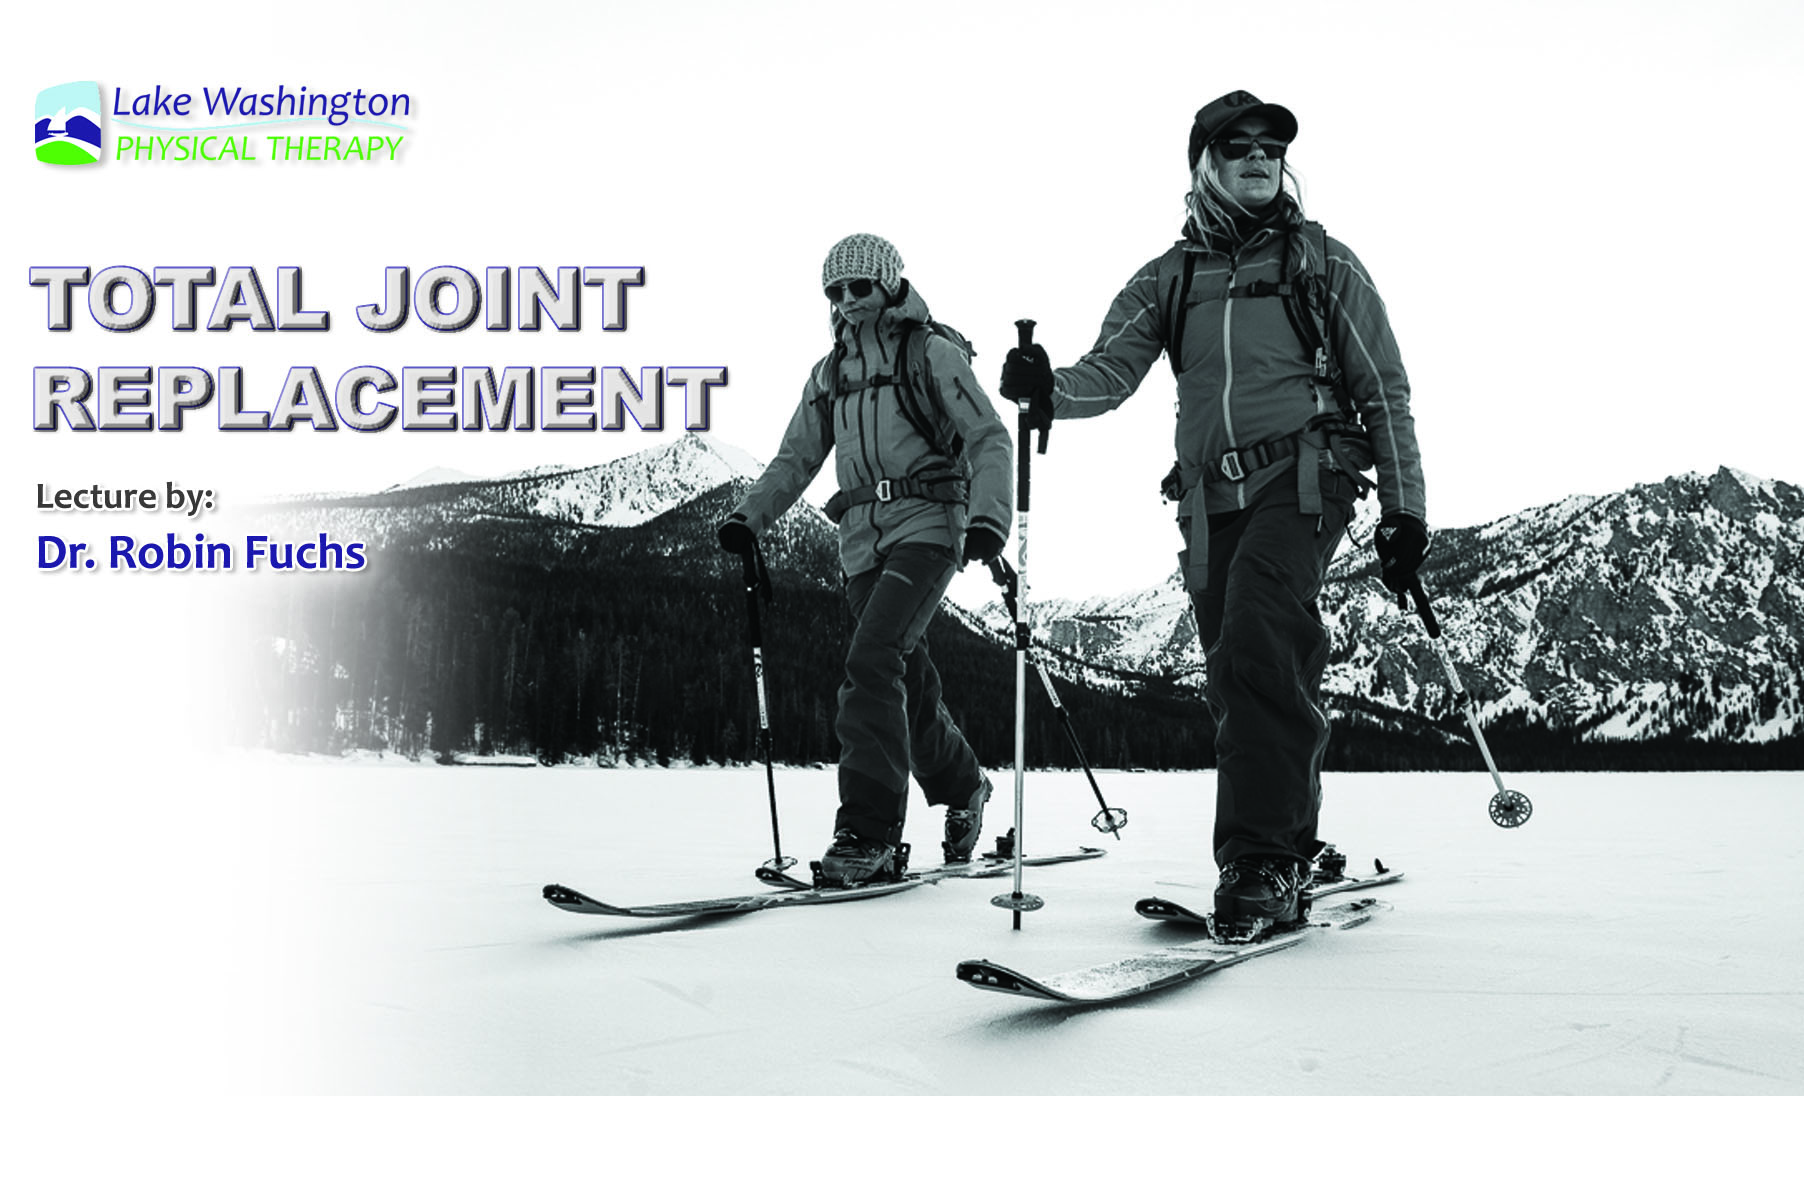 Dr. Robin FuchsTotal Knee Replacement - Dr. Robin Fuchs joined us for a lecture on the latest updates and breakthroughs in total joint replacement. For more on Dr. Fuchs (click here)